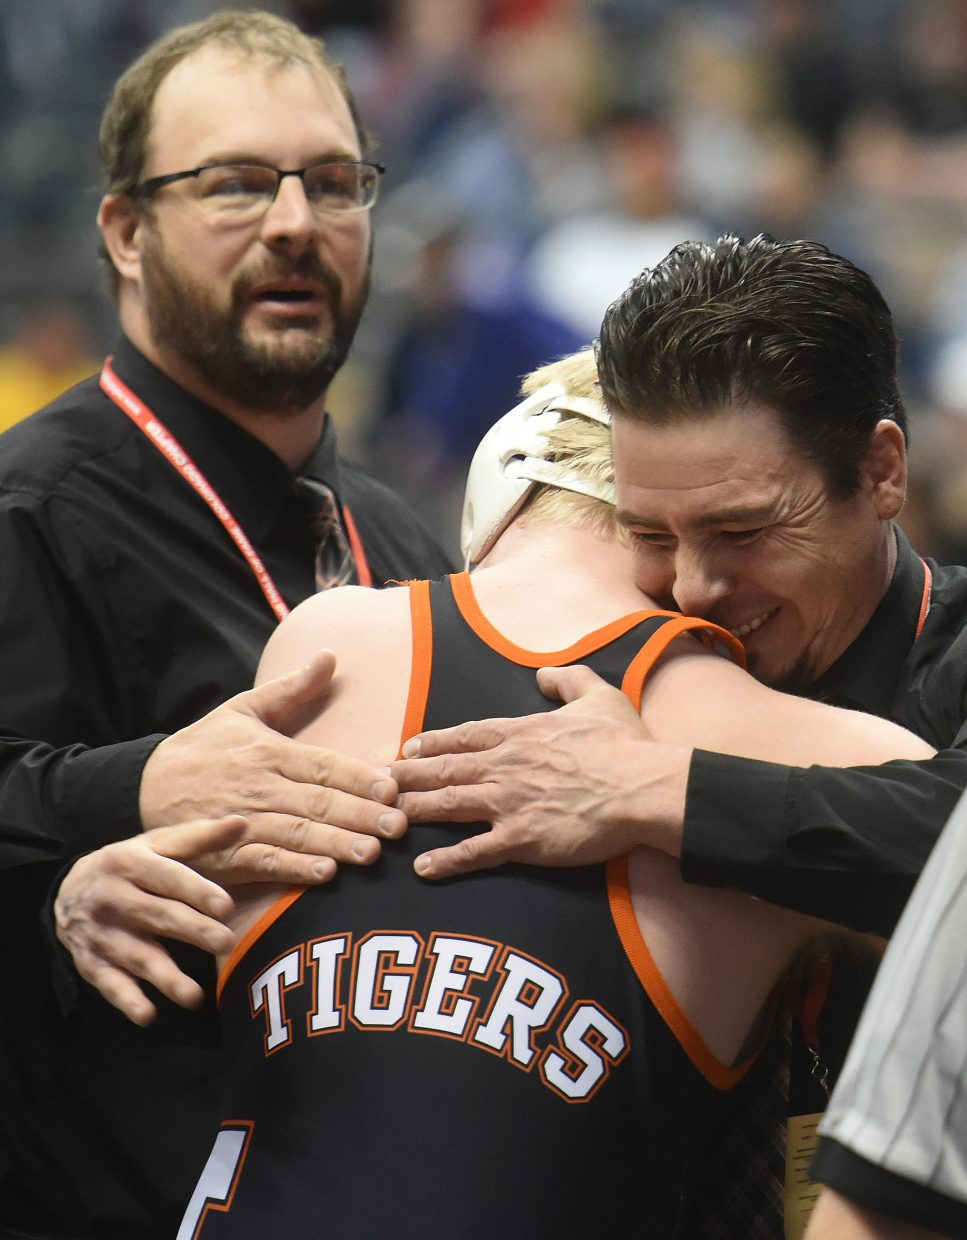 Hayden senior Christan Carson shares a hug with coach Chad Jones on Friday after Carson won his championship semifinal match in overtime at the state wrestling tournament in Denver.